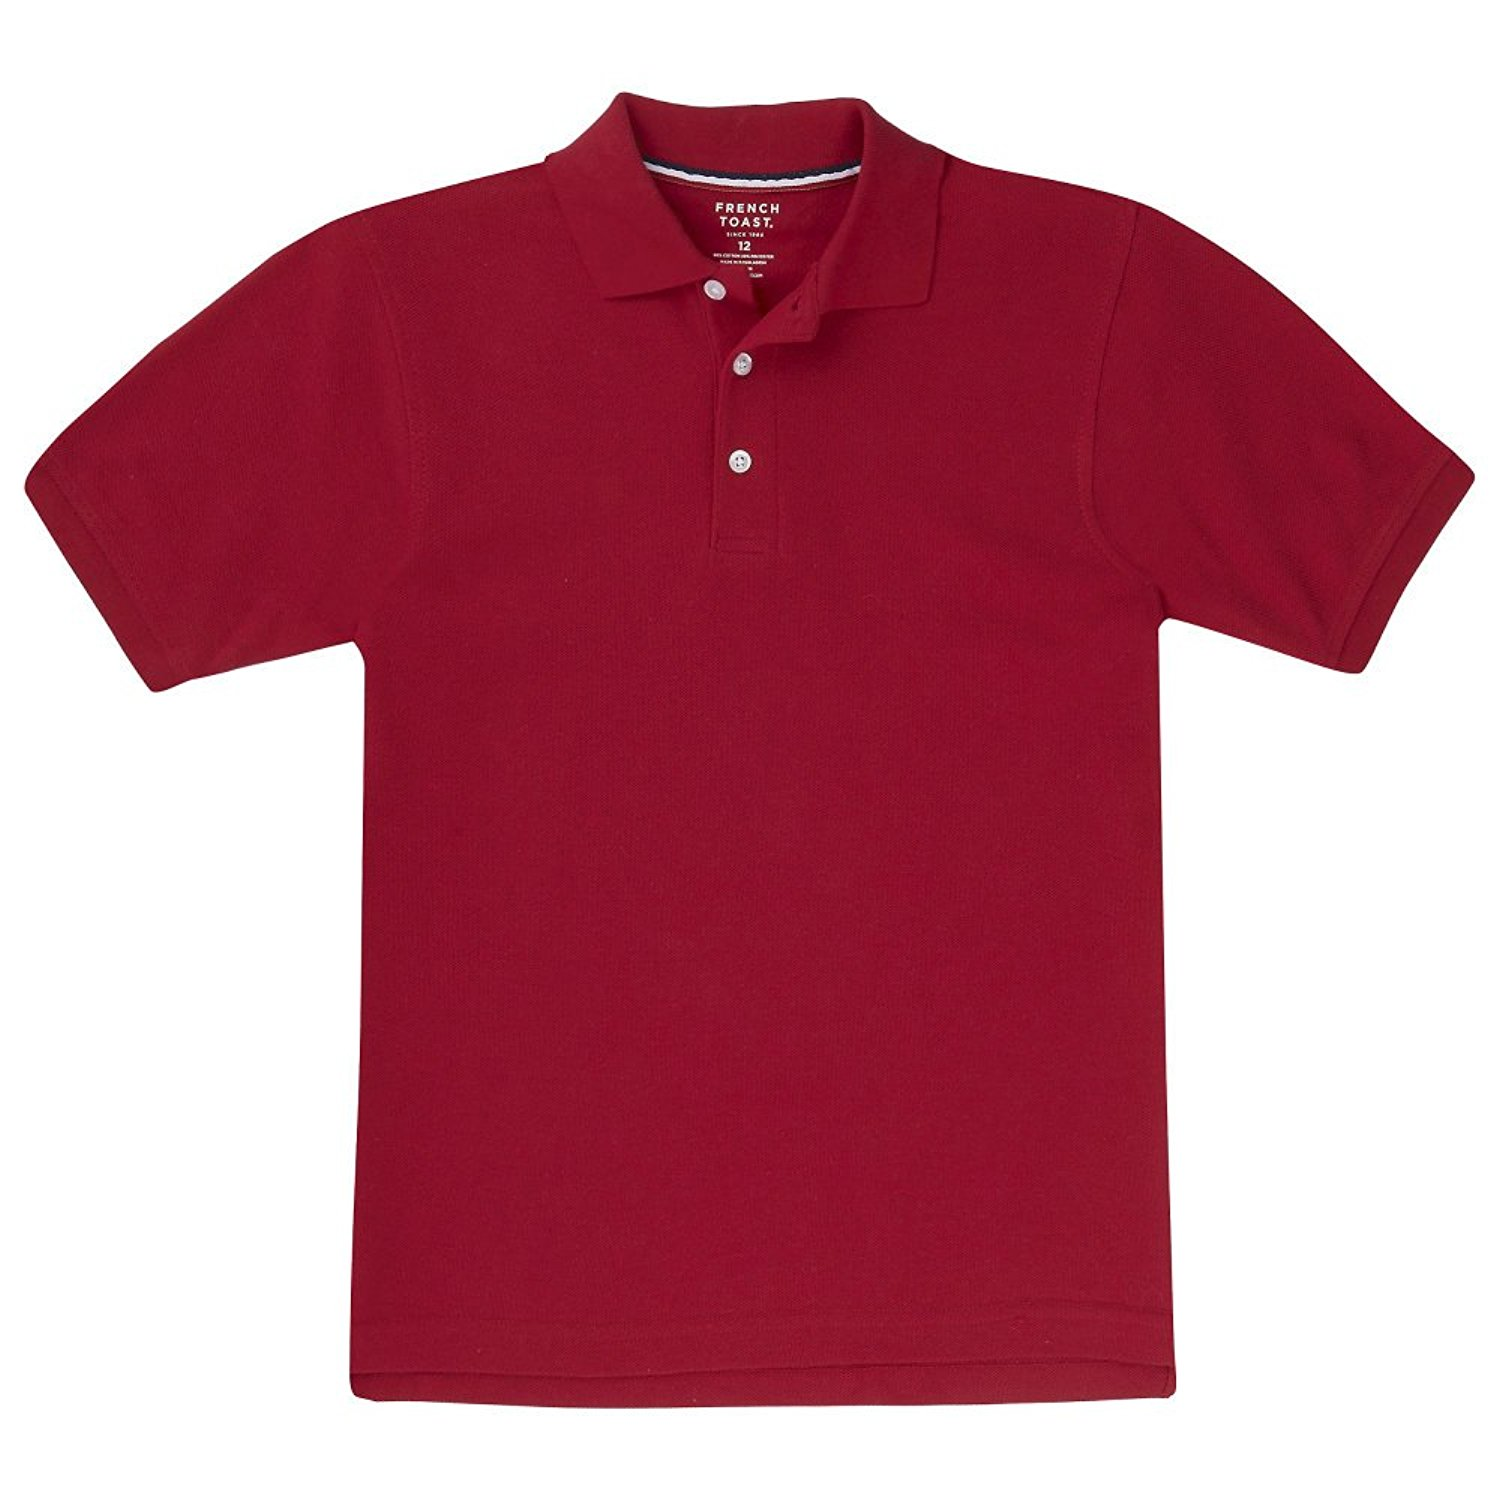 French Toast School Uniform Boys Short Sleeve Pique Polo Shirt, Red, 20